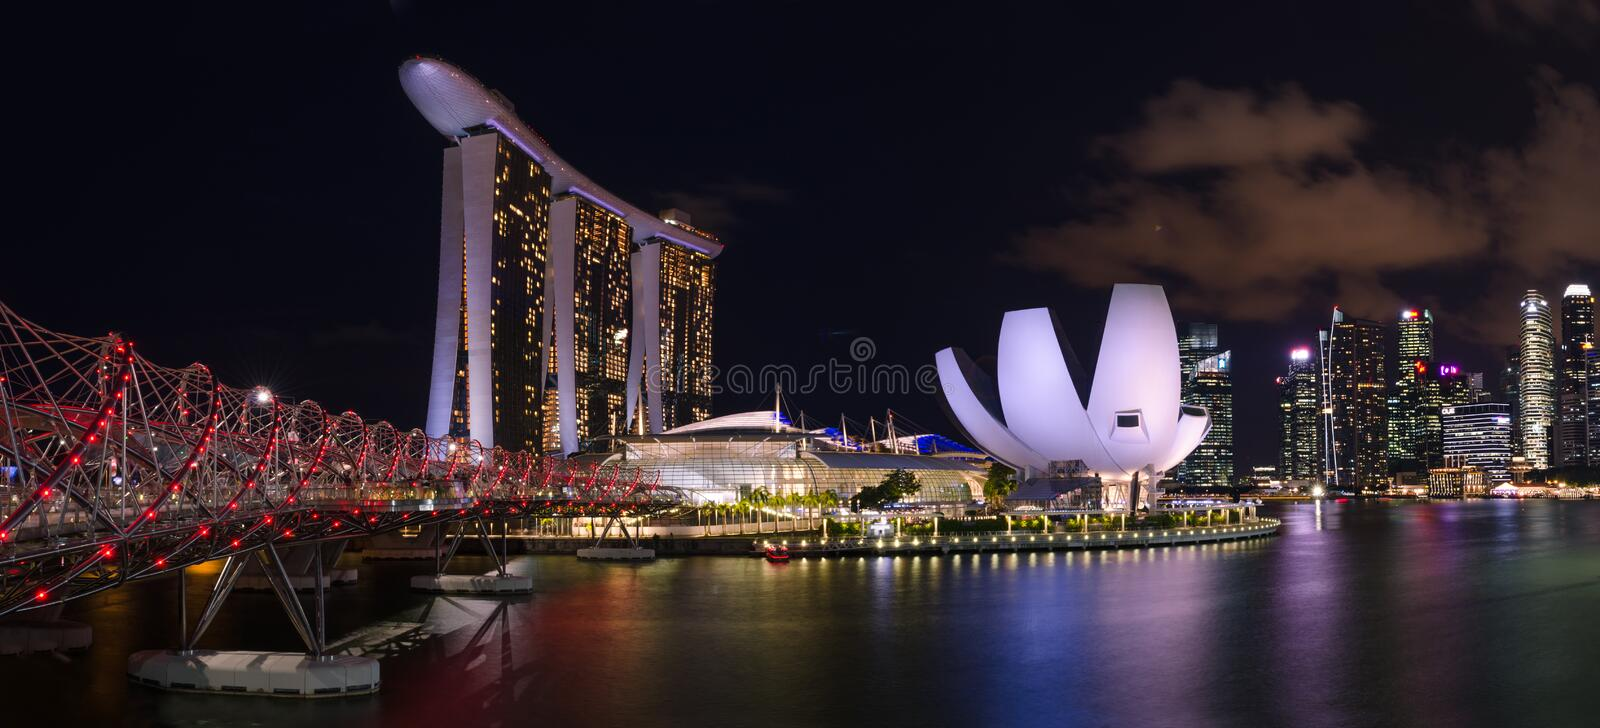 Nachtpanorama von Marina Bay Sands-Hotel und Art Science Museum in Singapur stockfoto